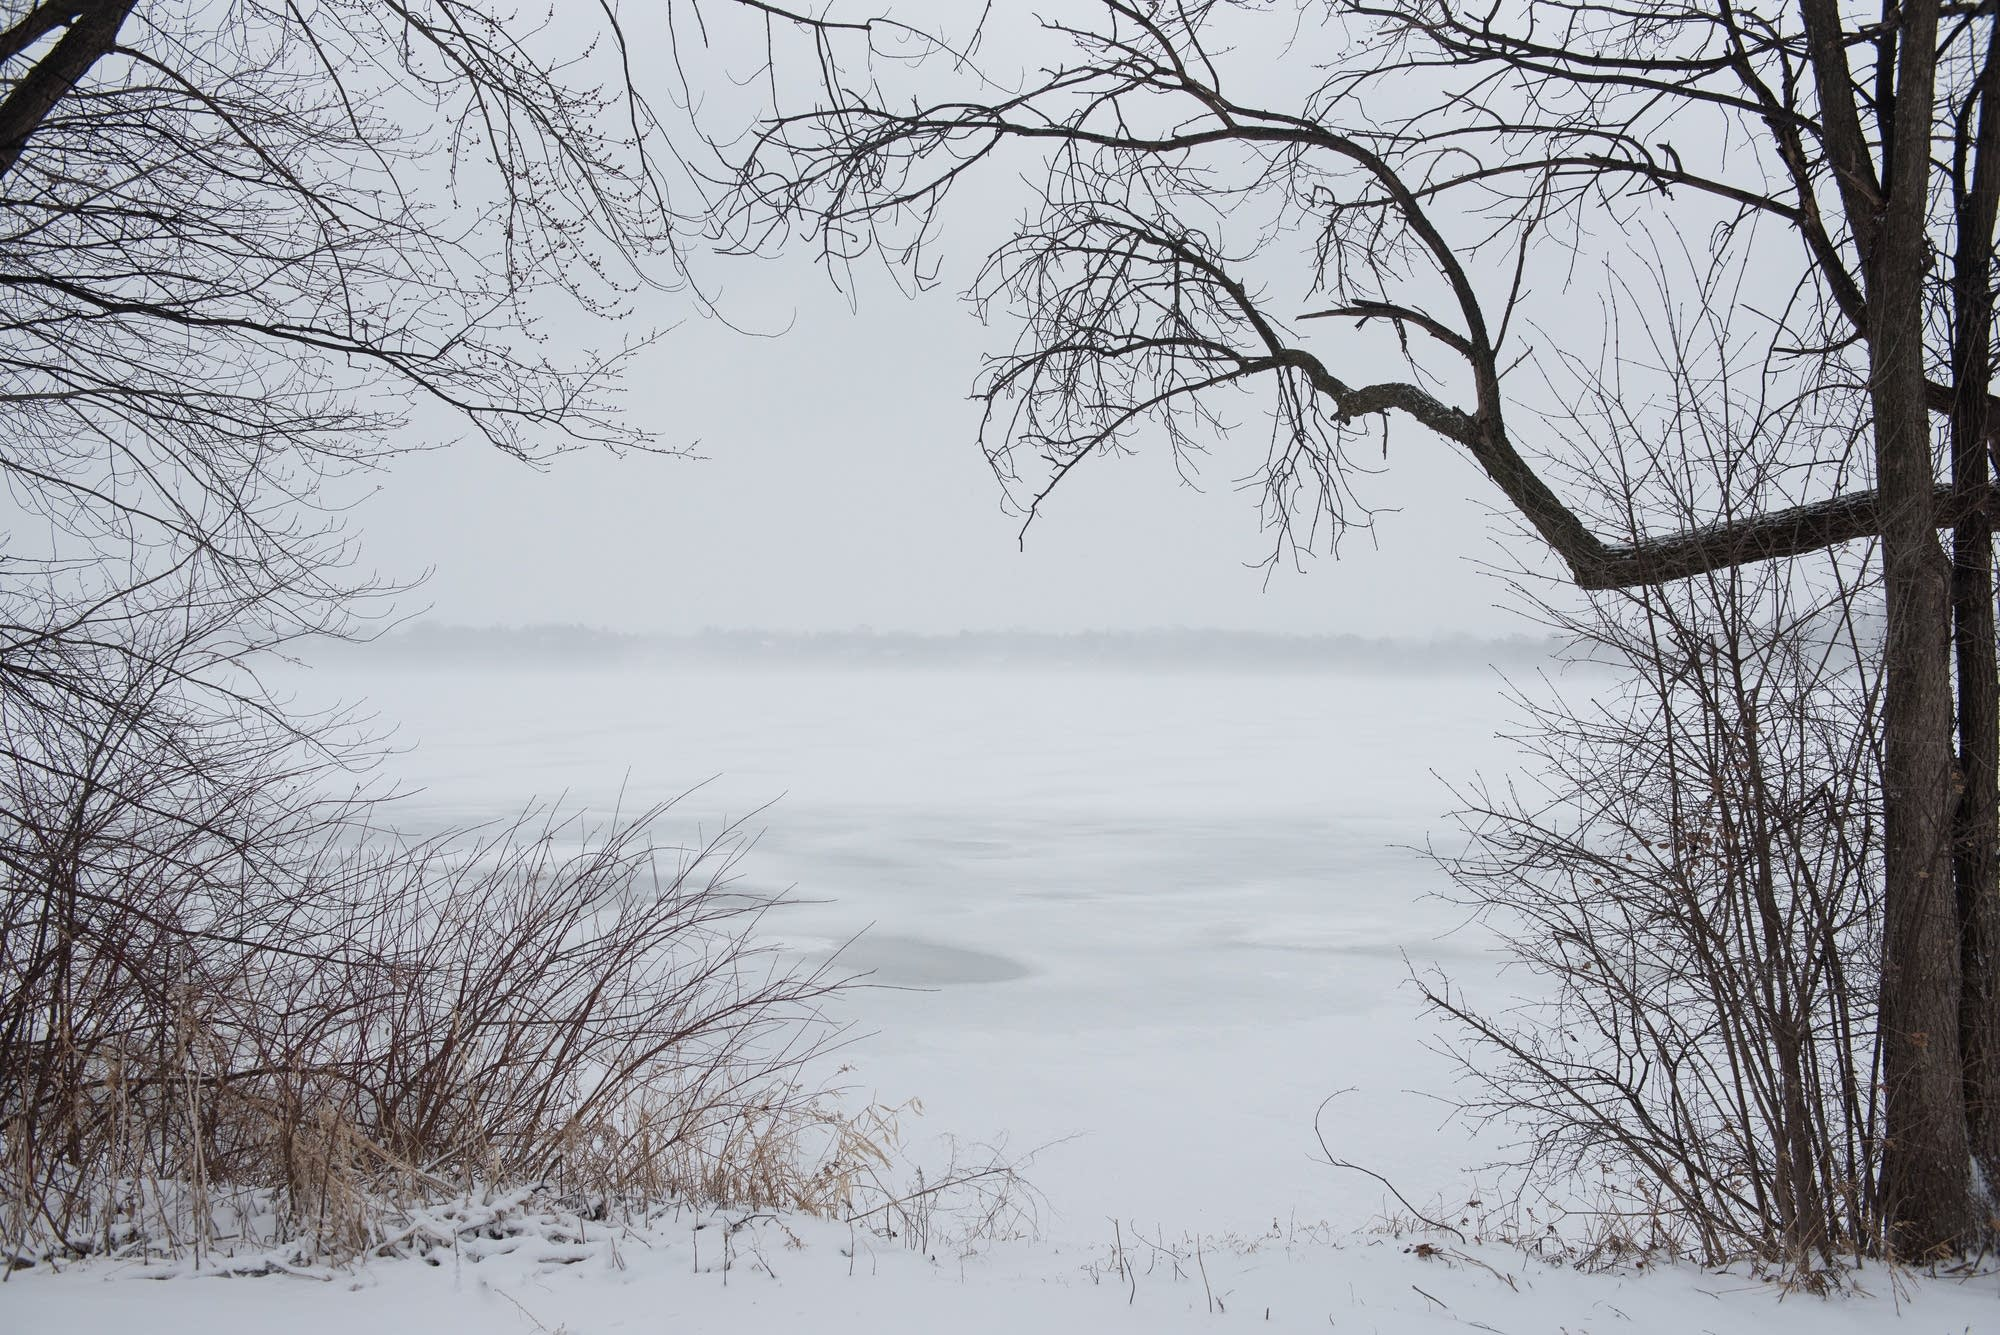 Snow blows across the icy surface of Lake Harriet Saturday morning.